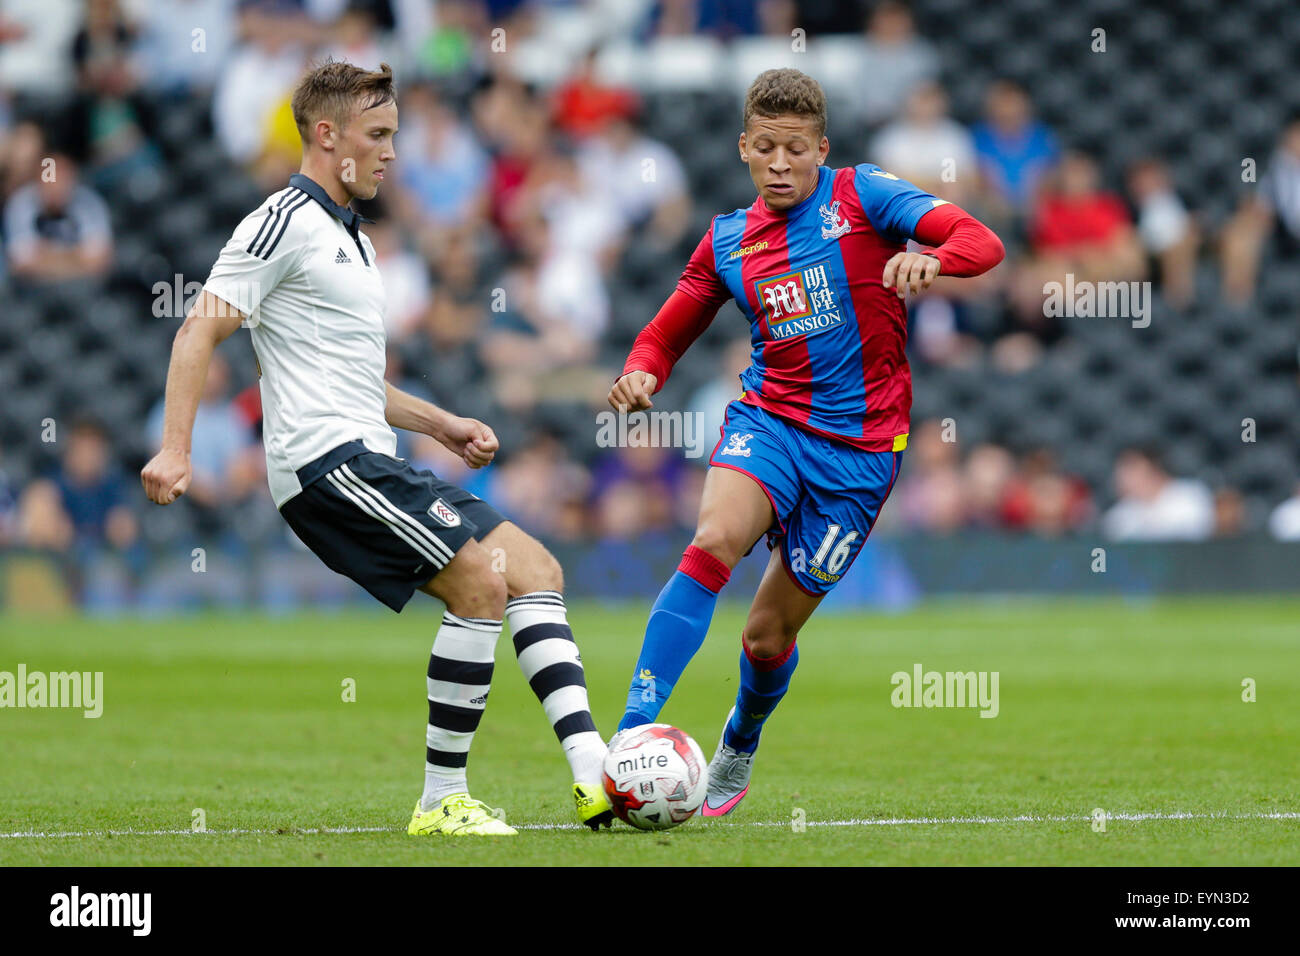 London, UK. 01st Aug, 2015. Pre Season Friendly. Fulham versus Crystal Palace. Crystal Palace's Dwight Gayle - Stock Image